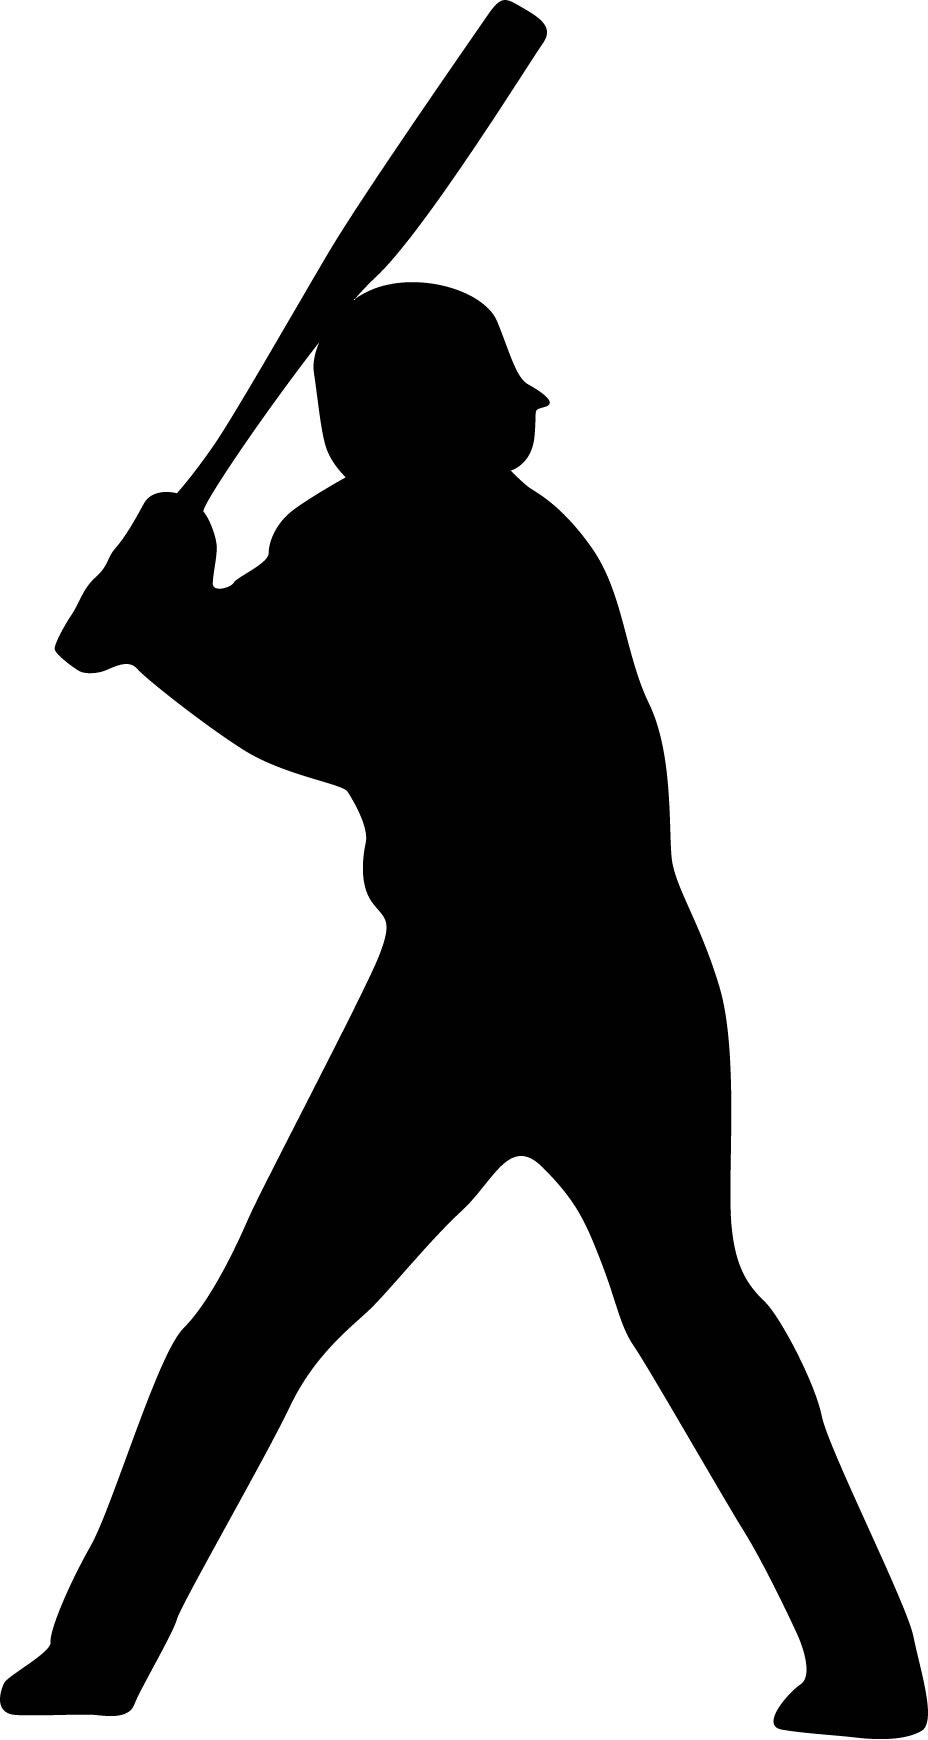 928x1740 Pitcher Clipart Baseball Player Silhouette